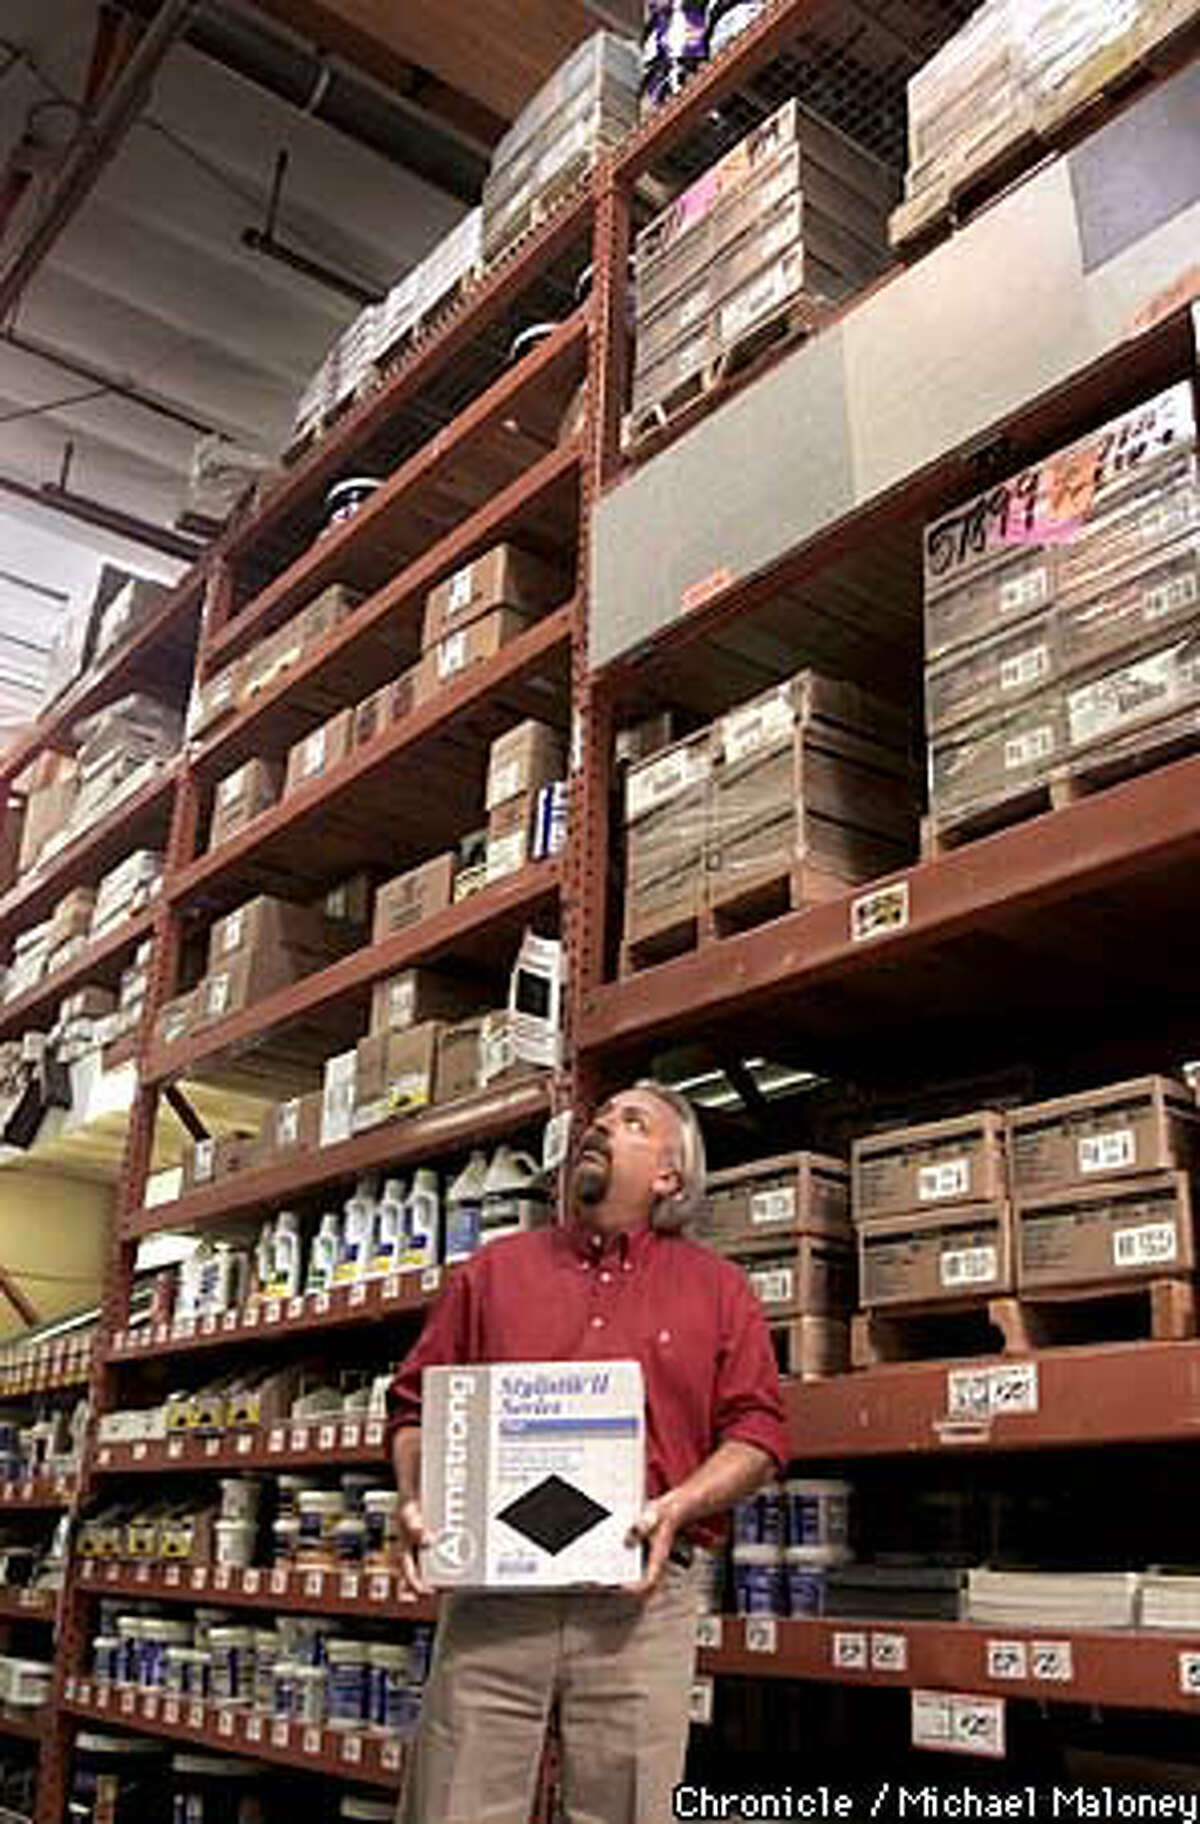 Dan Ernest held a 30-pound box of tiles similar to the one that hit him after it fell from the top shelf of the Home Depot store in Roseville. Chronicle photo by Michael Maloney